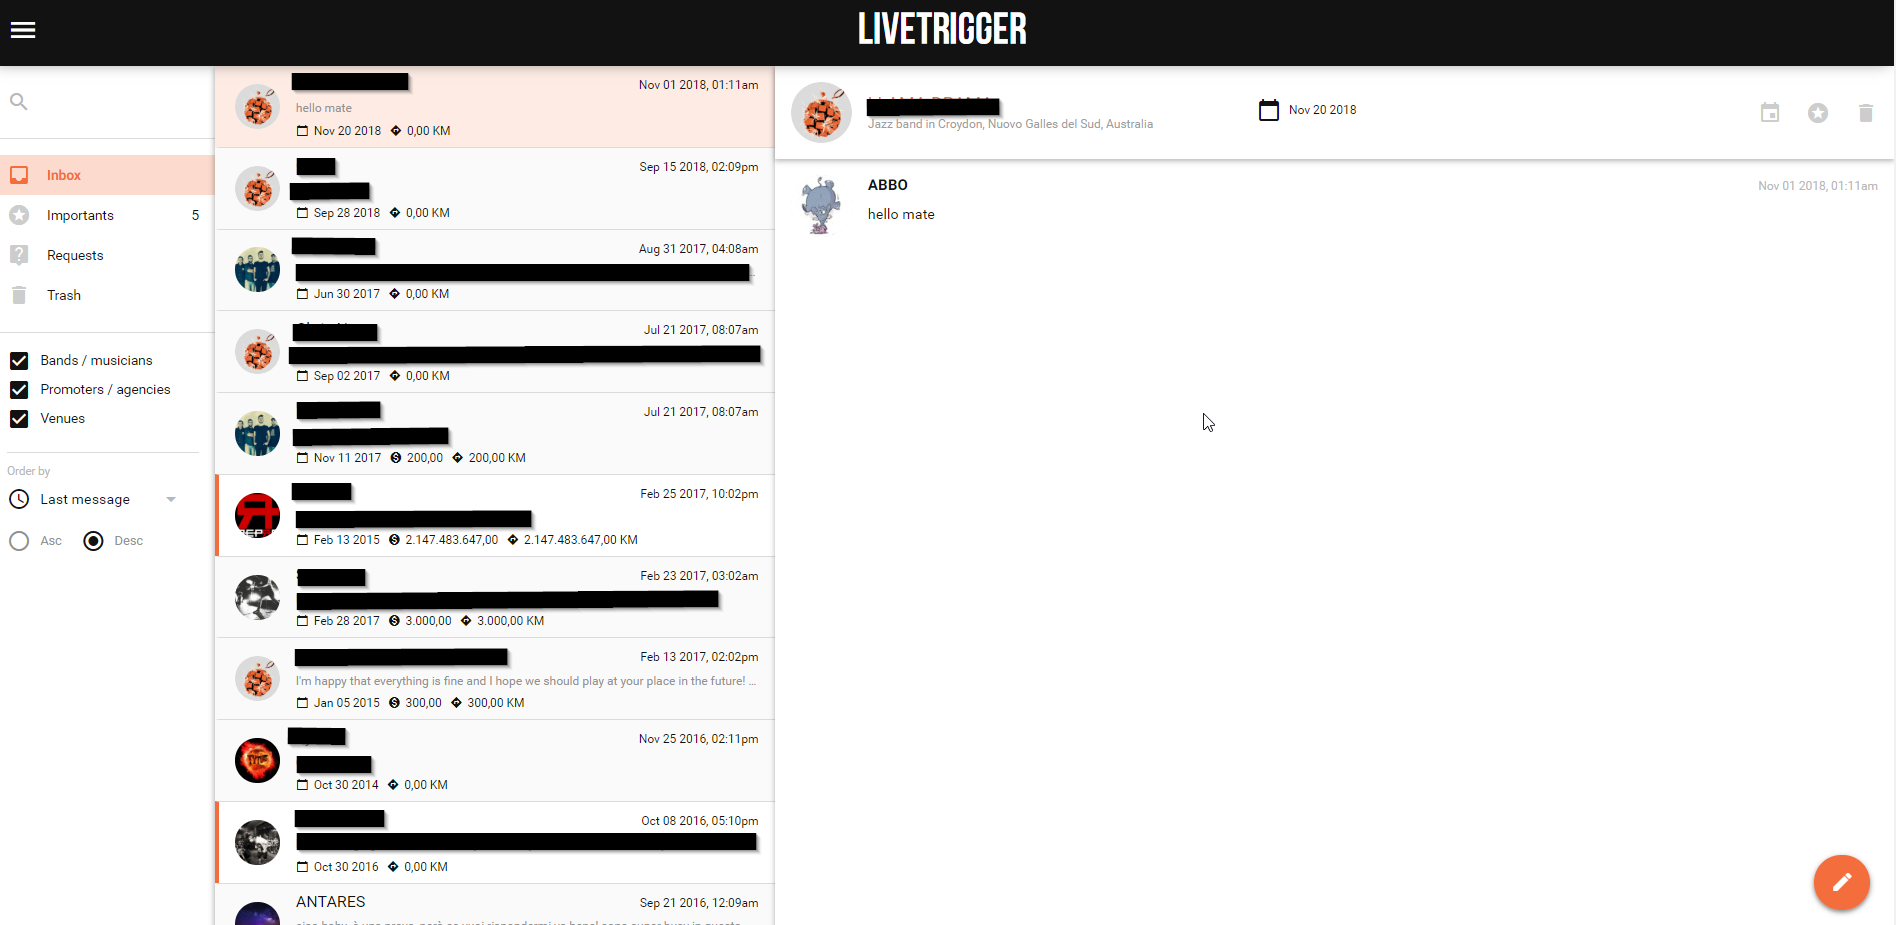 Let's have a look at Abbo's LiveTrigger inbox